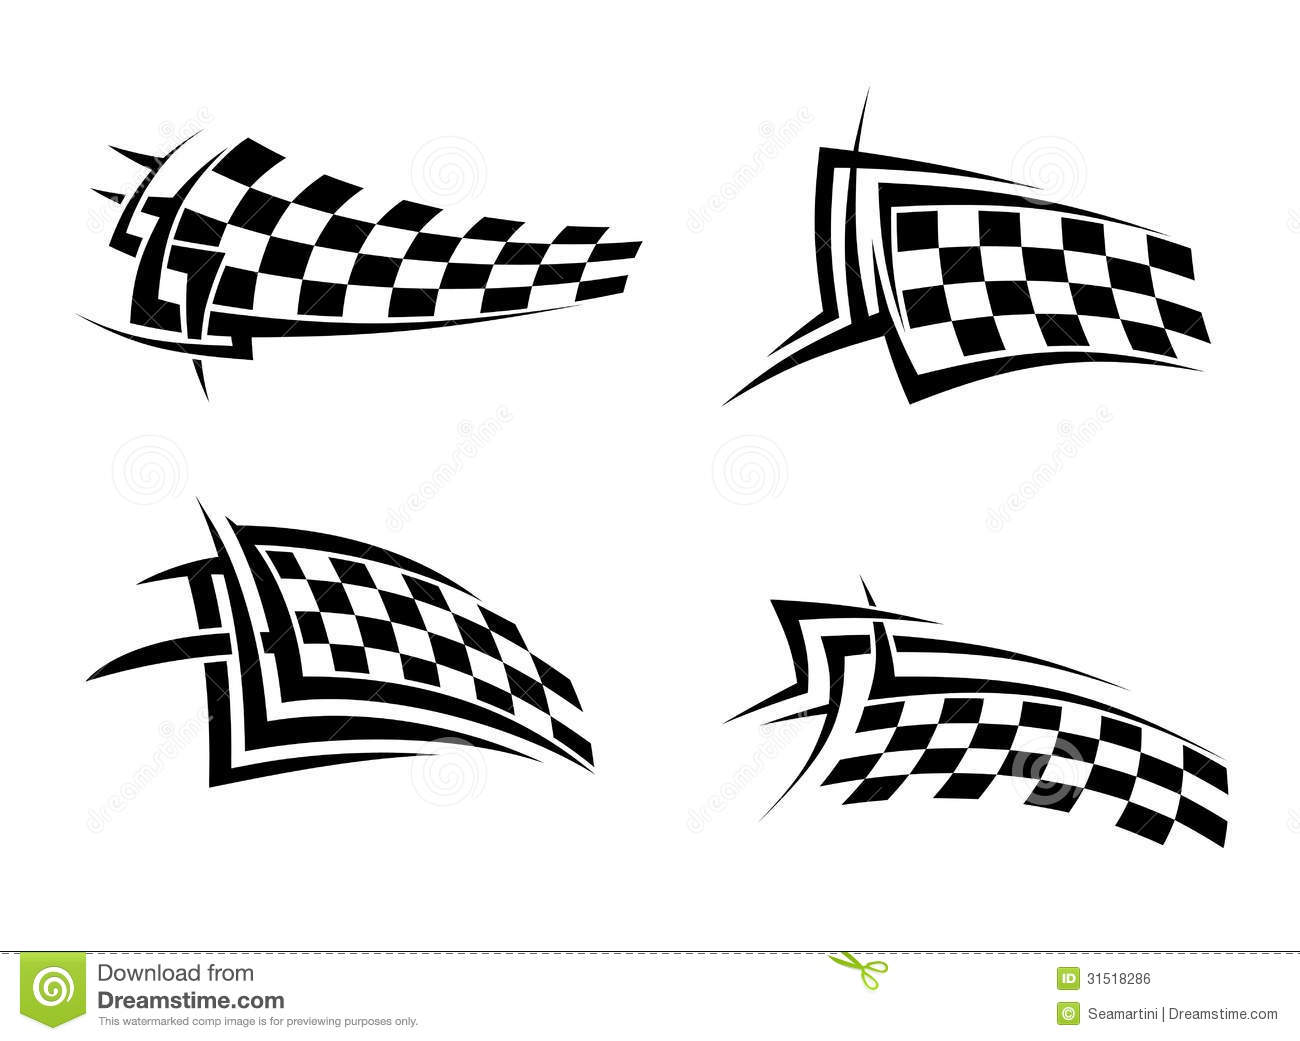 Tribal Signs With Checkered Flags Royalty Free Stock Image